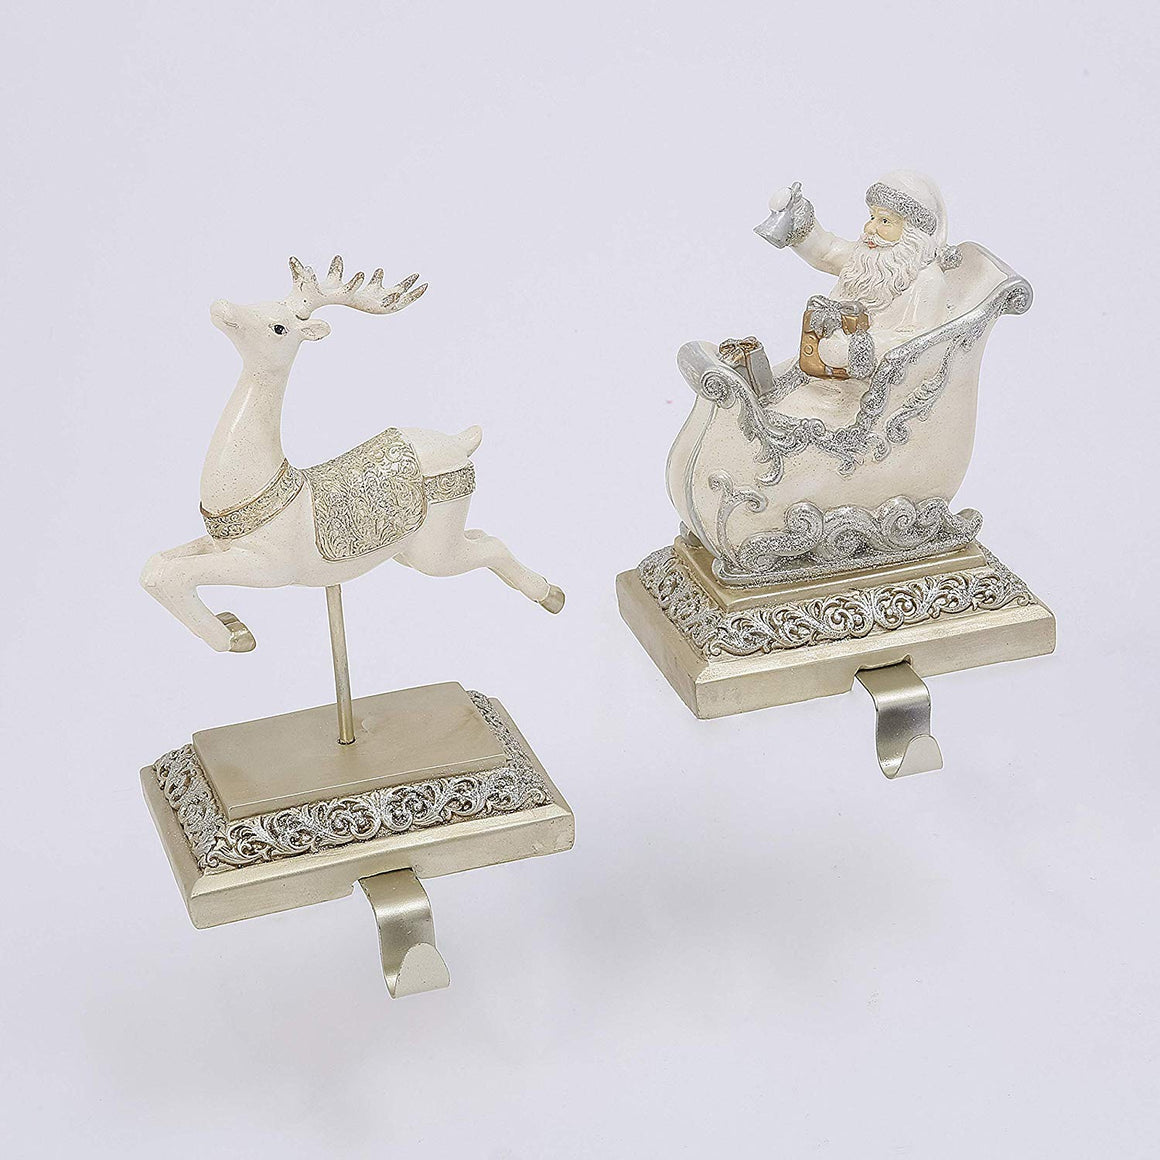 Set of 2 Gilded Stocking Holders in Cream and Gold and Silver, Santa in Sled and Reindeer in Sculpted Resin